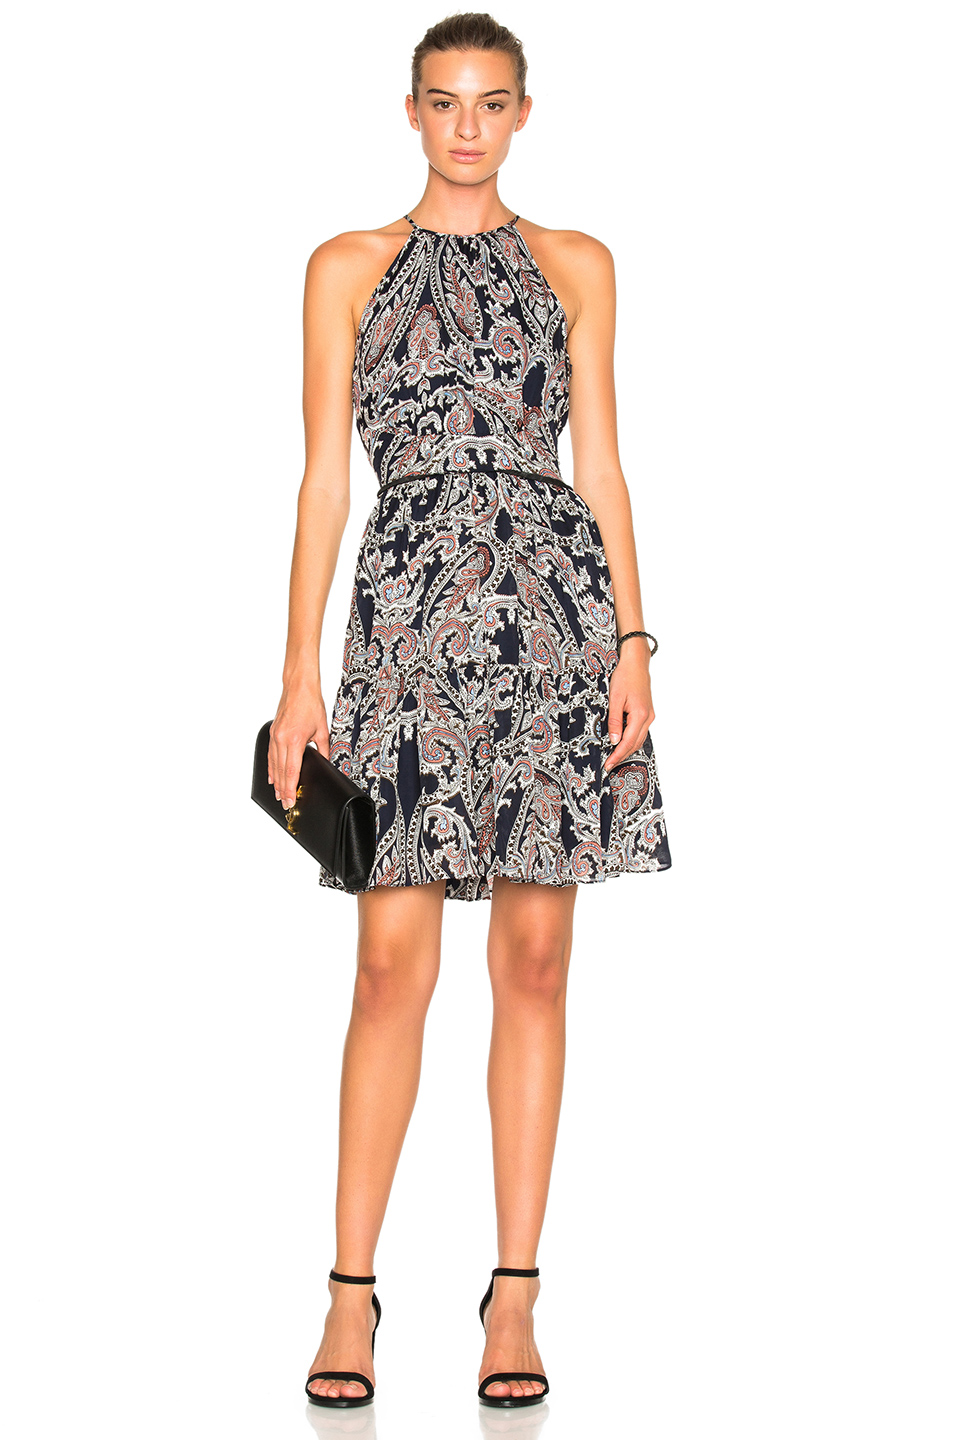 L'AGENCE Alyse Dress in Blue,Abstract